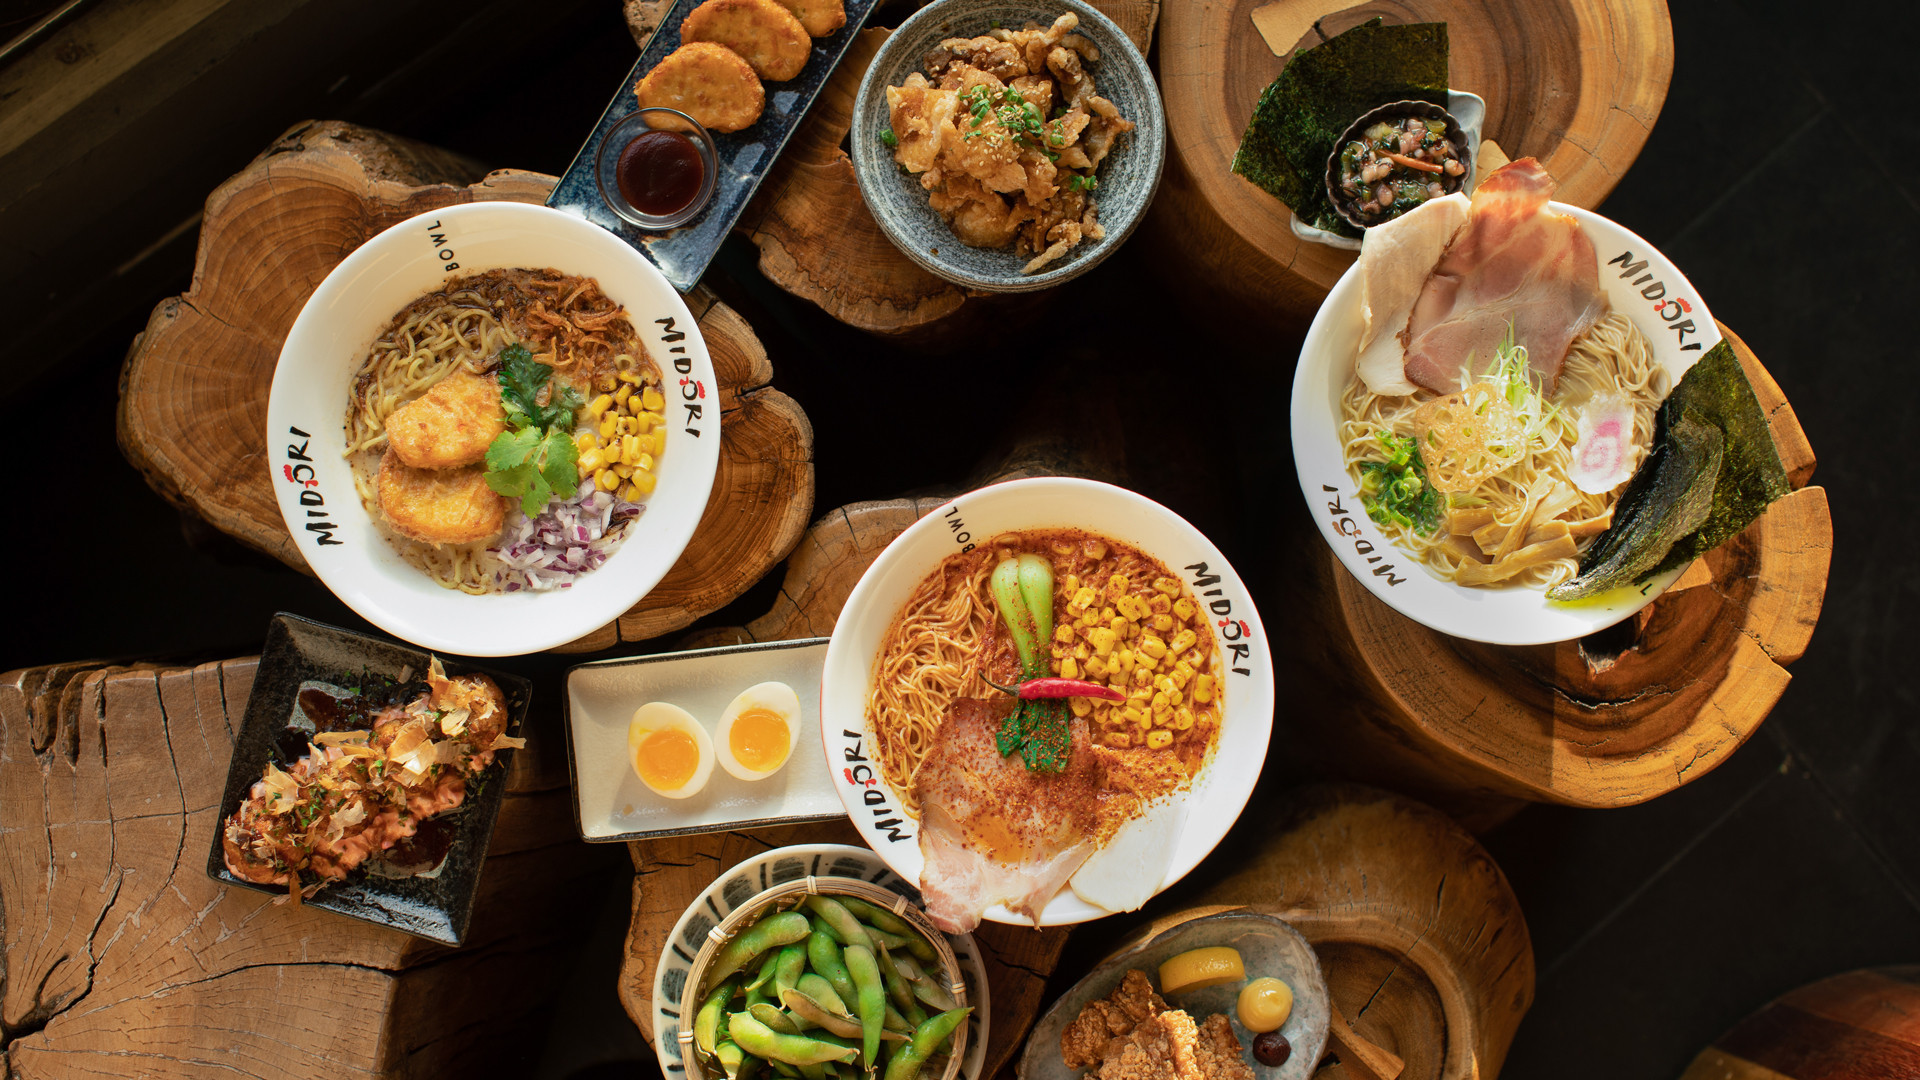 The best new restaurants in Toronto | A spread of ramen and other dishes at Midori